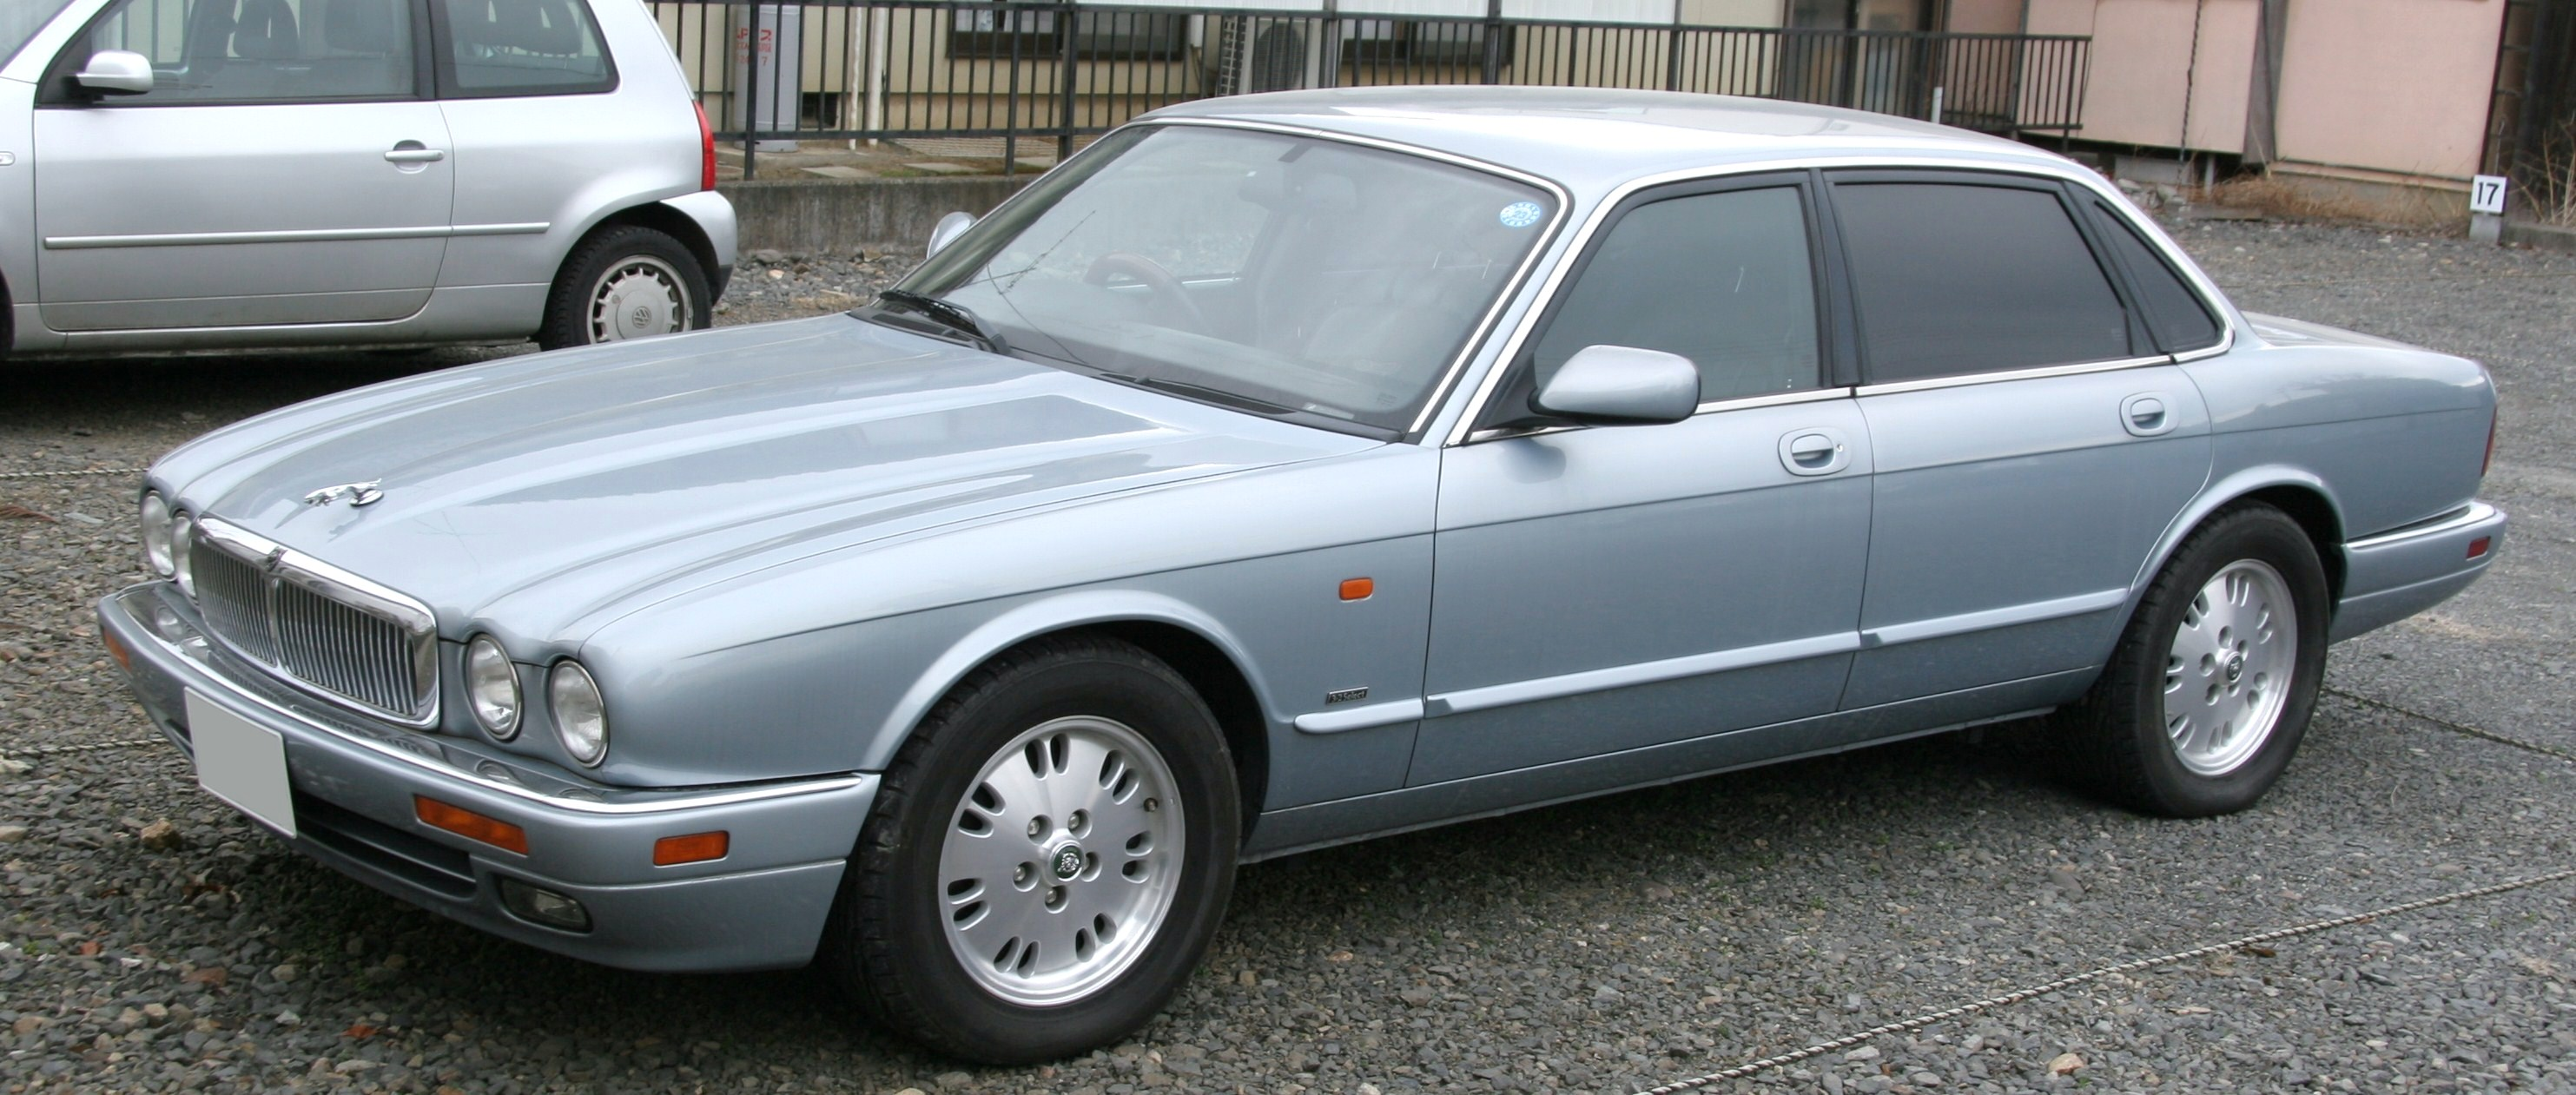 1991 Jaguar Xj-series #12